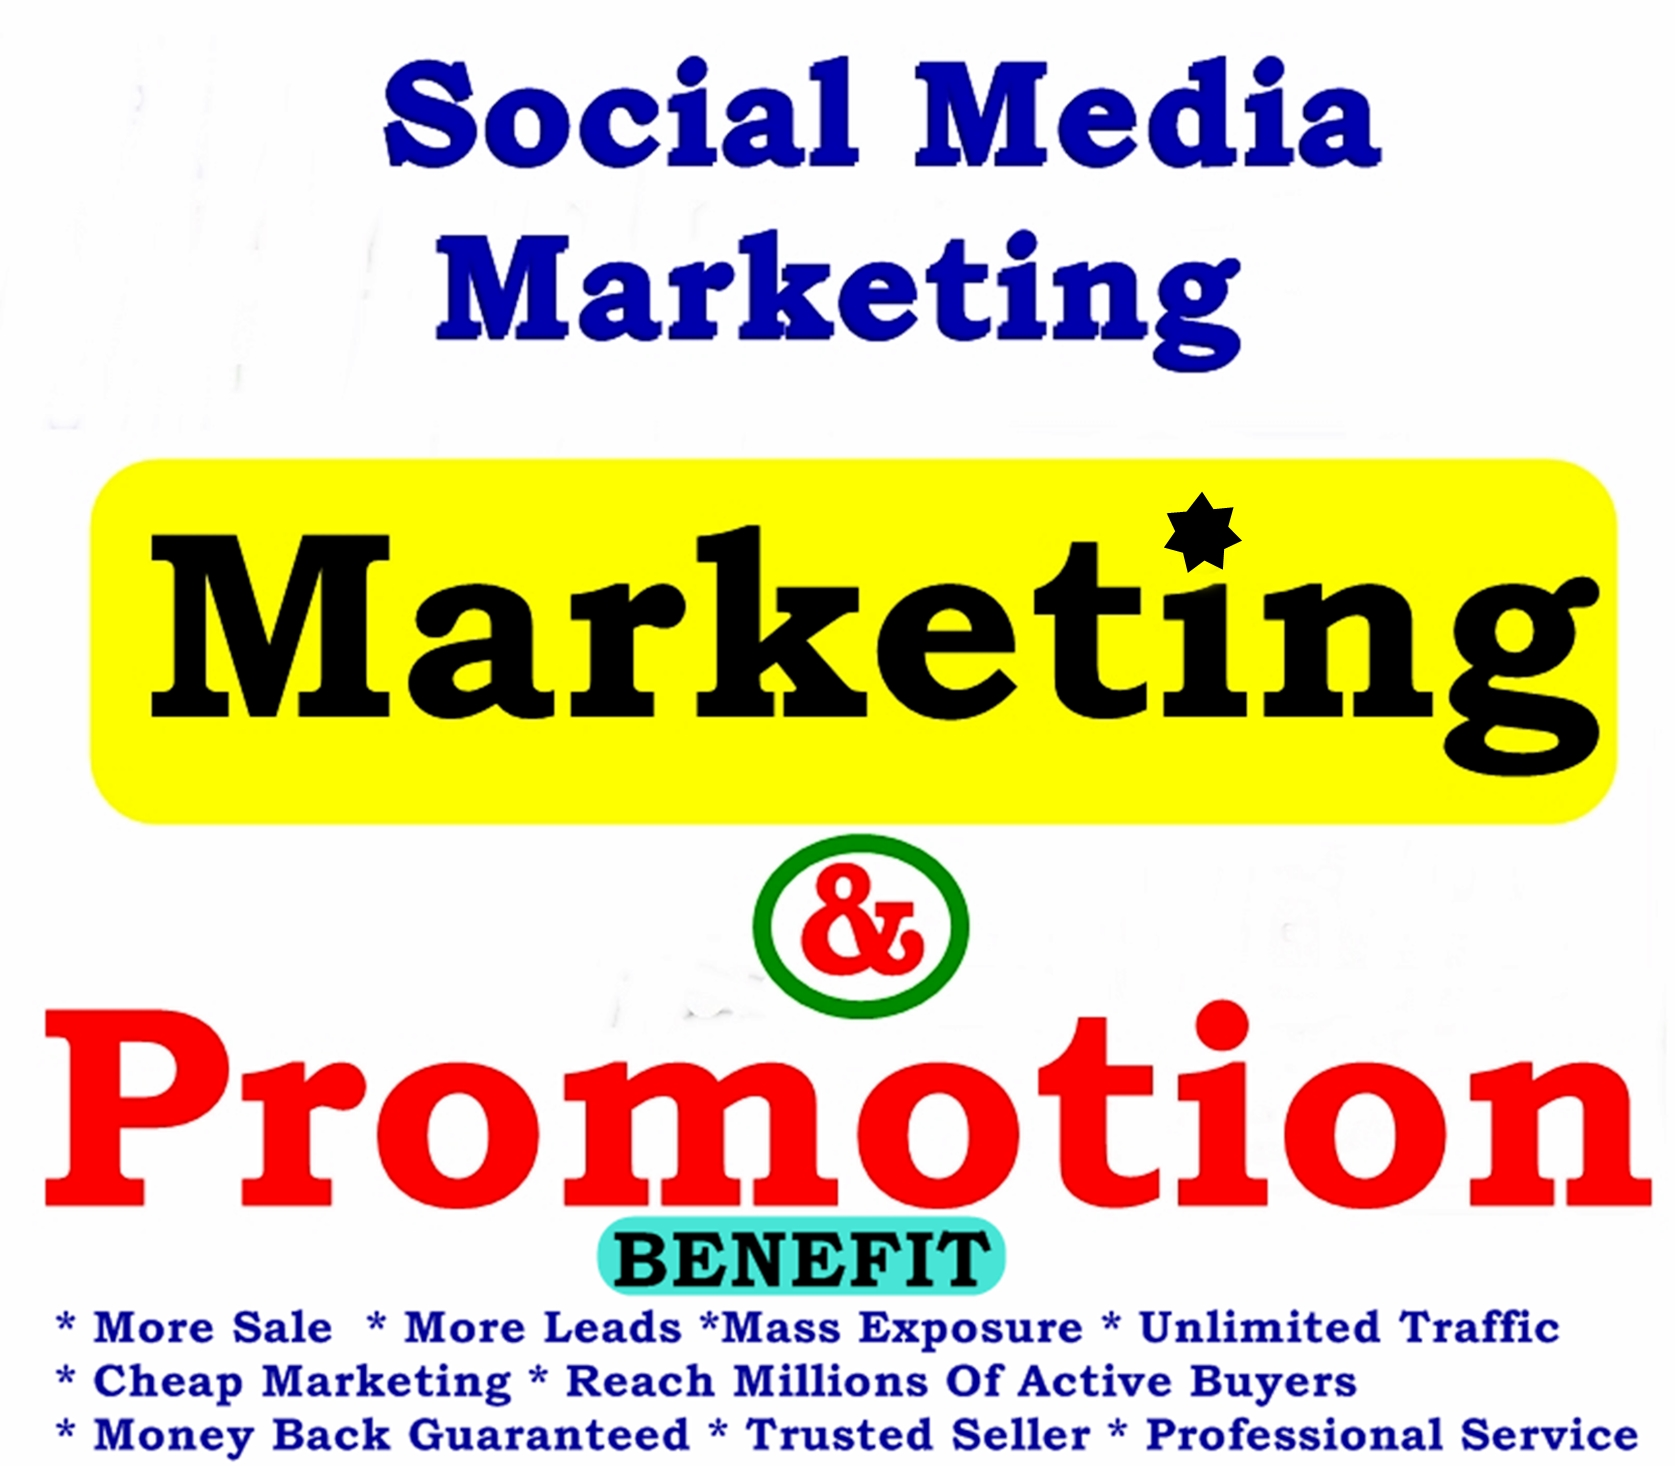 Massive PROMOTION and Marketing - Cheap Complete Social Media Over 3,000,000 OR 5,000,000